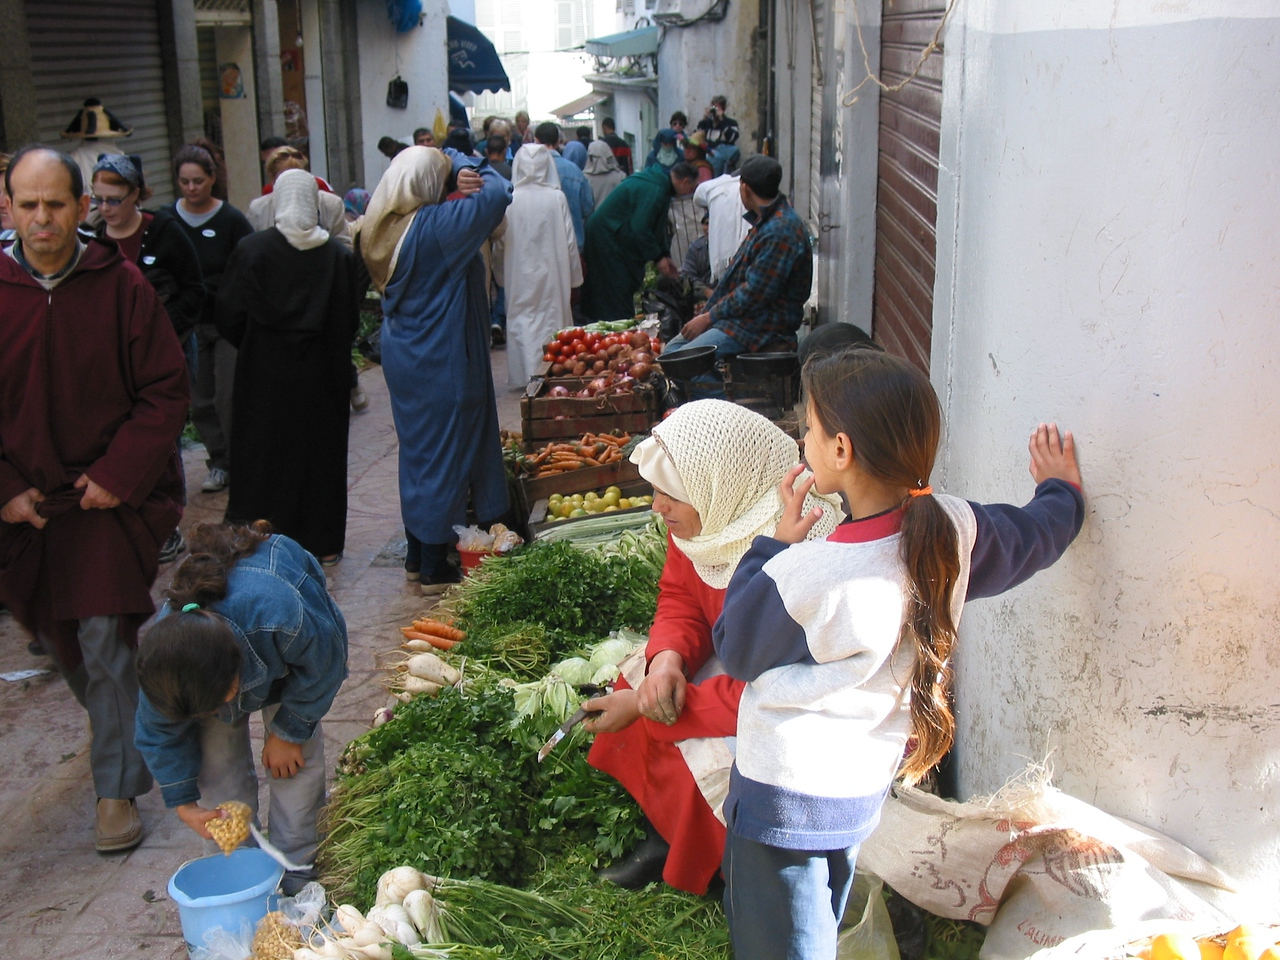 Panhandlers and locals can be very persistent when walking through the narrow streets of the old city.